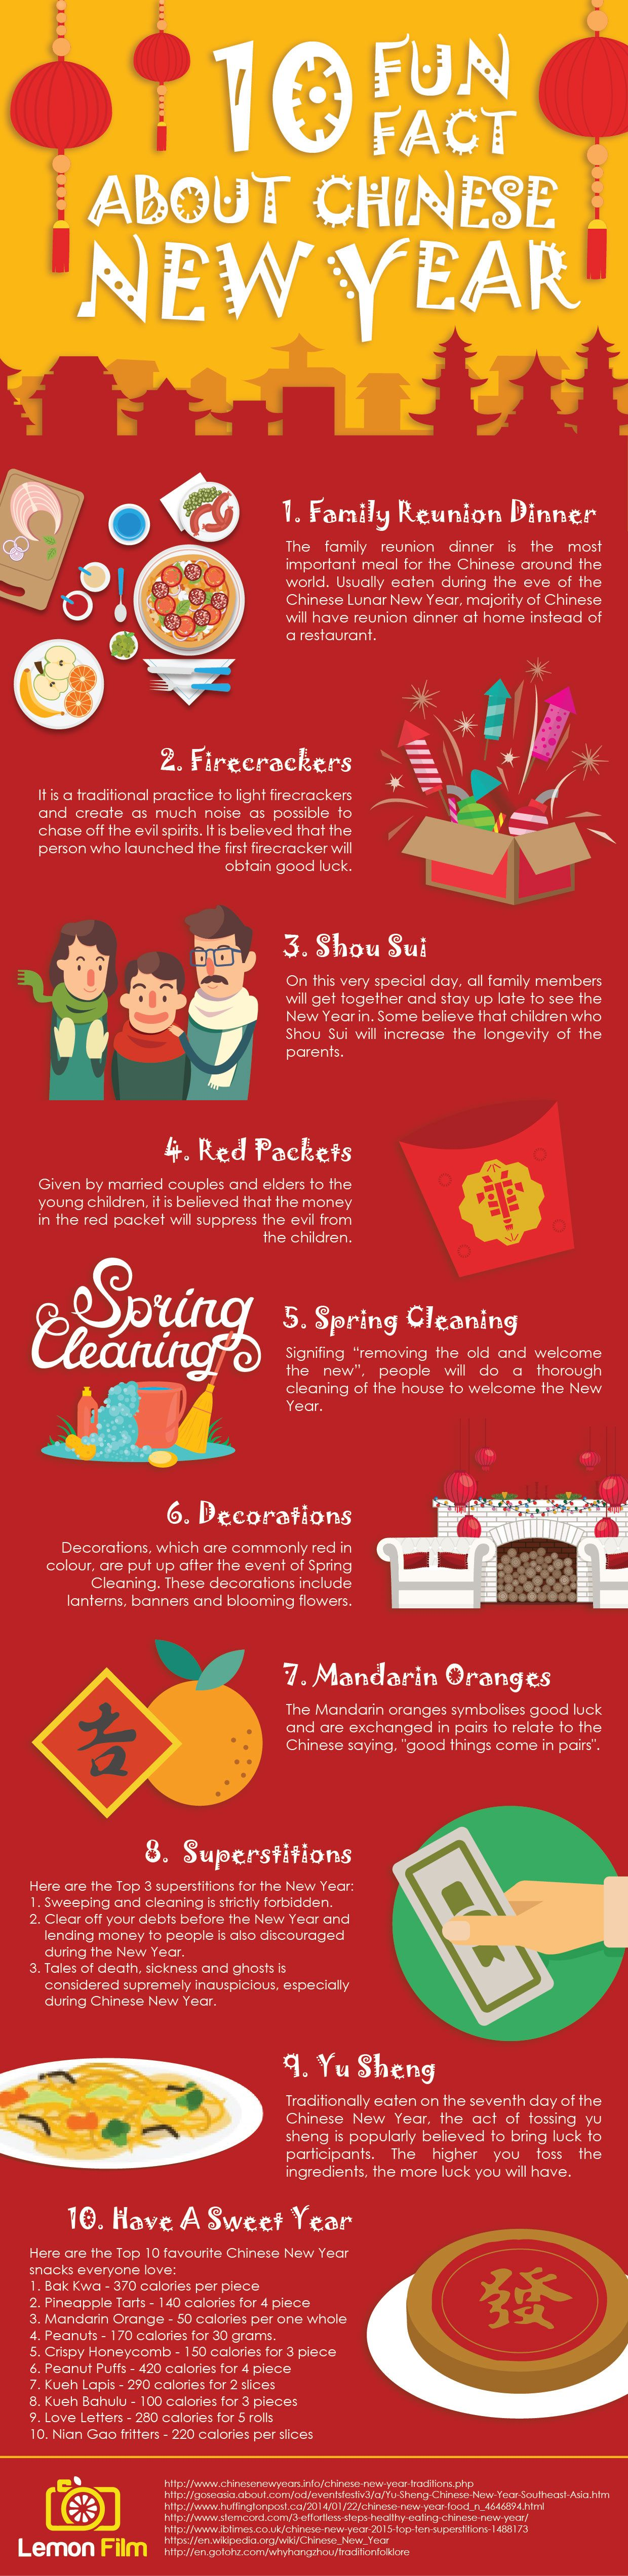 10 fun facts about chinese new year - Chinese New Year Facts